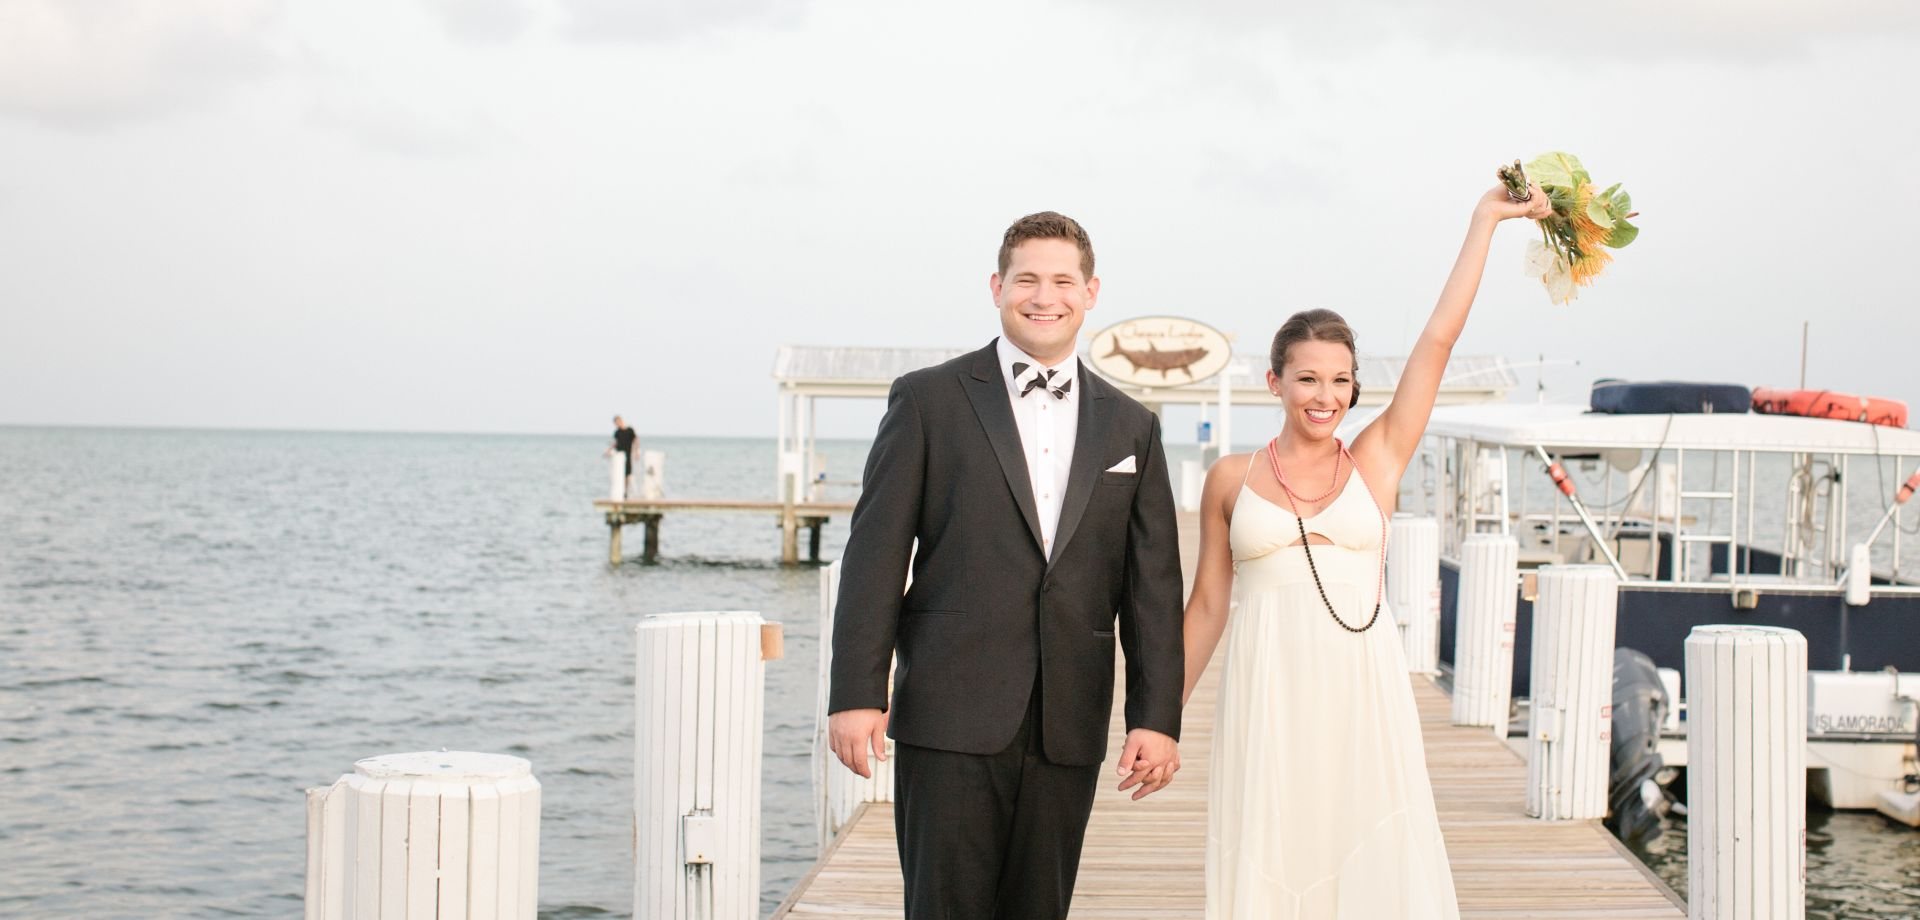 Couple posing for a photo after getting married, on pier